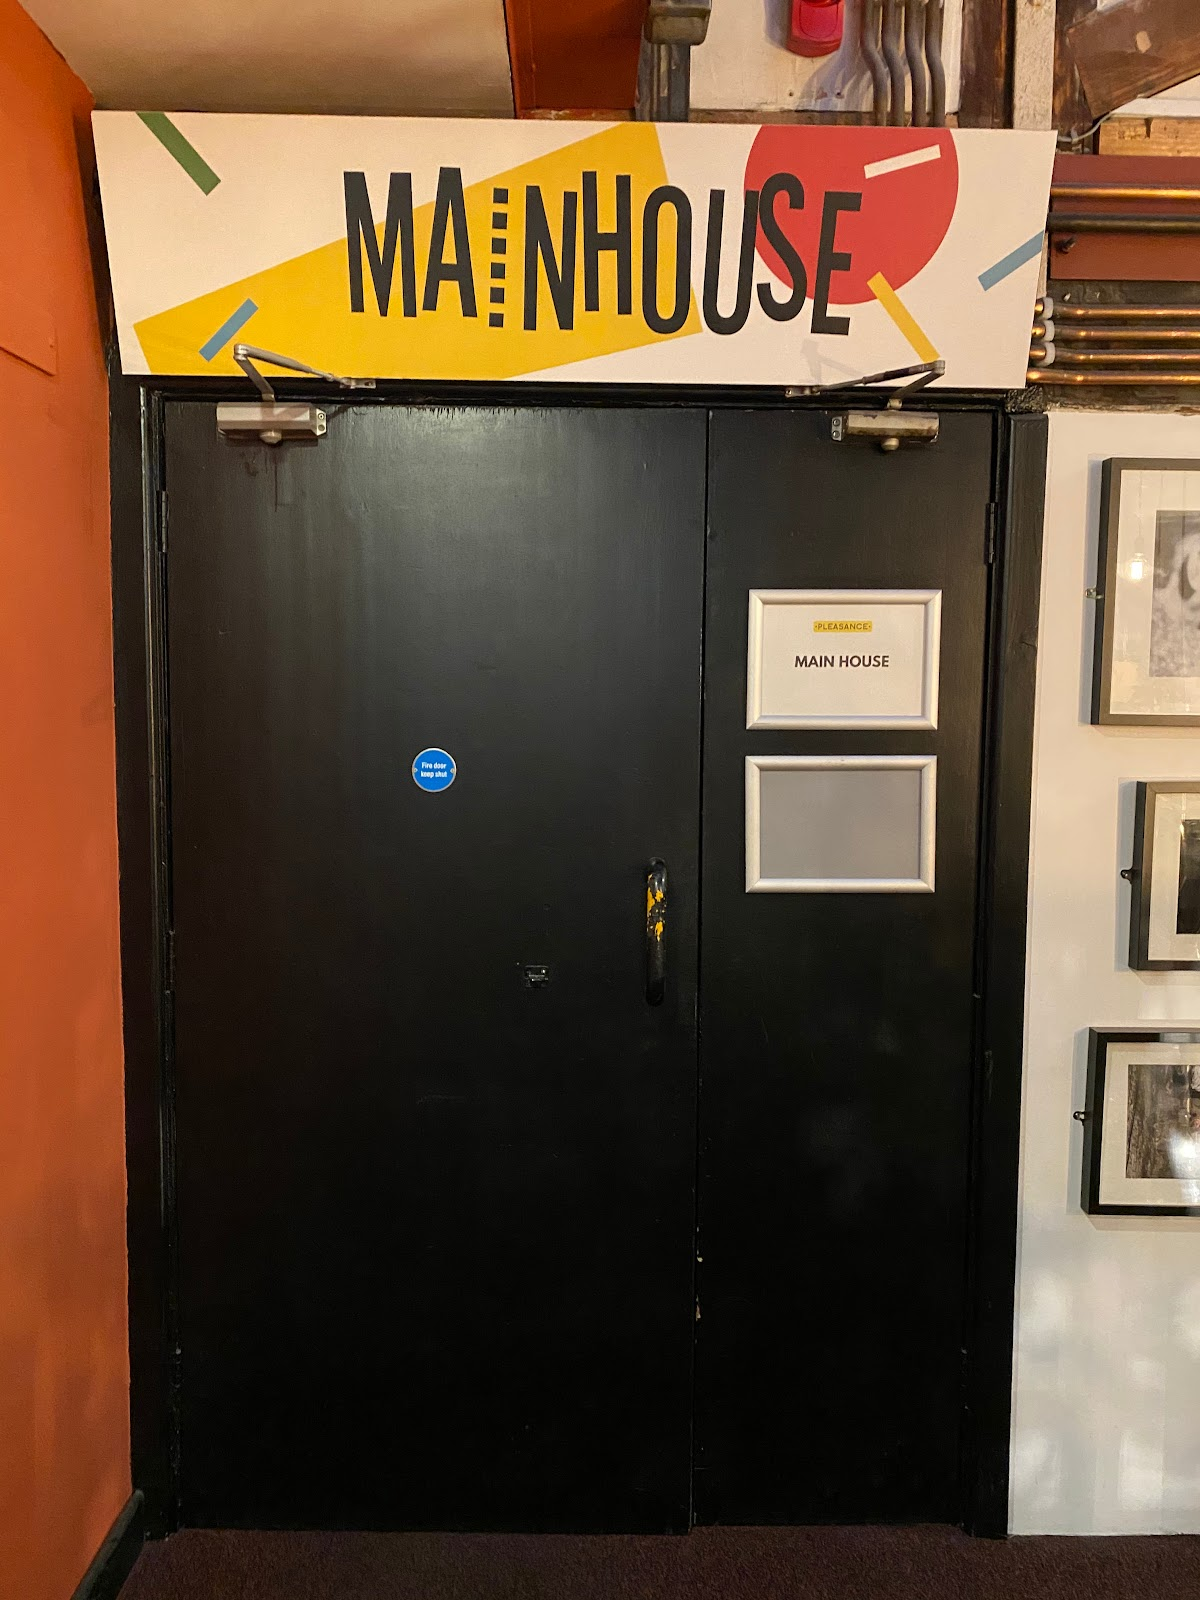 """There is a sign above the door that says """"Main House"""""""